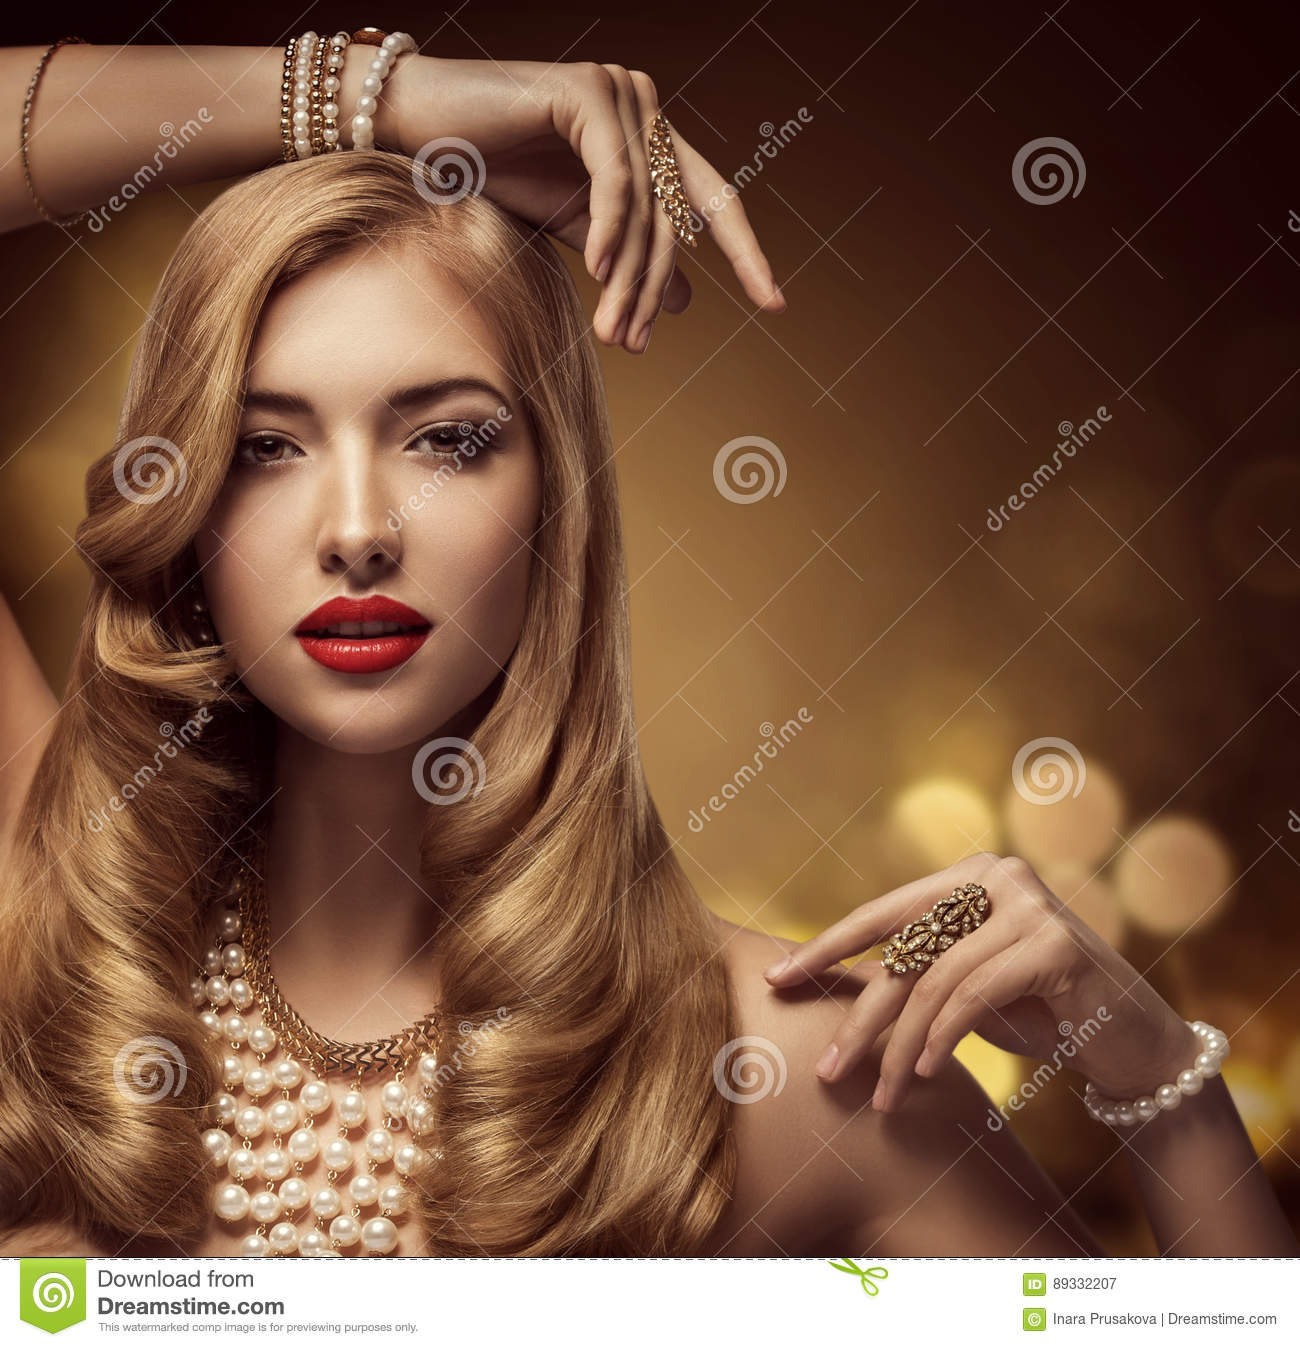 Woman Jewelry Beauty, Fashion Model Makeup, Young Girl